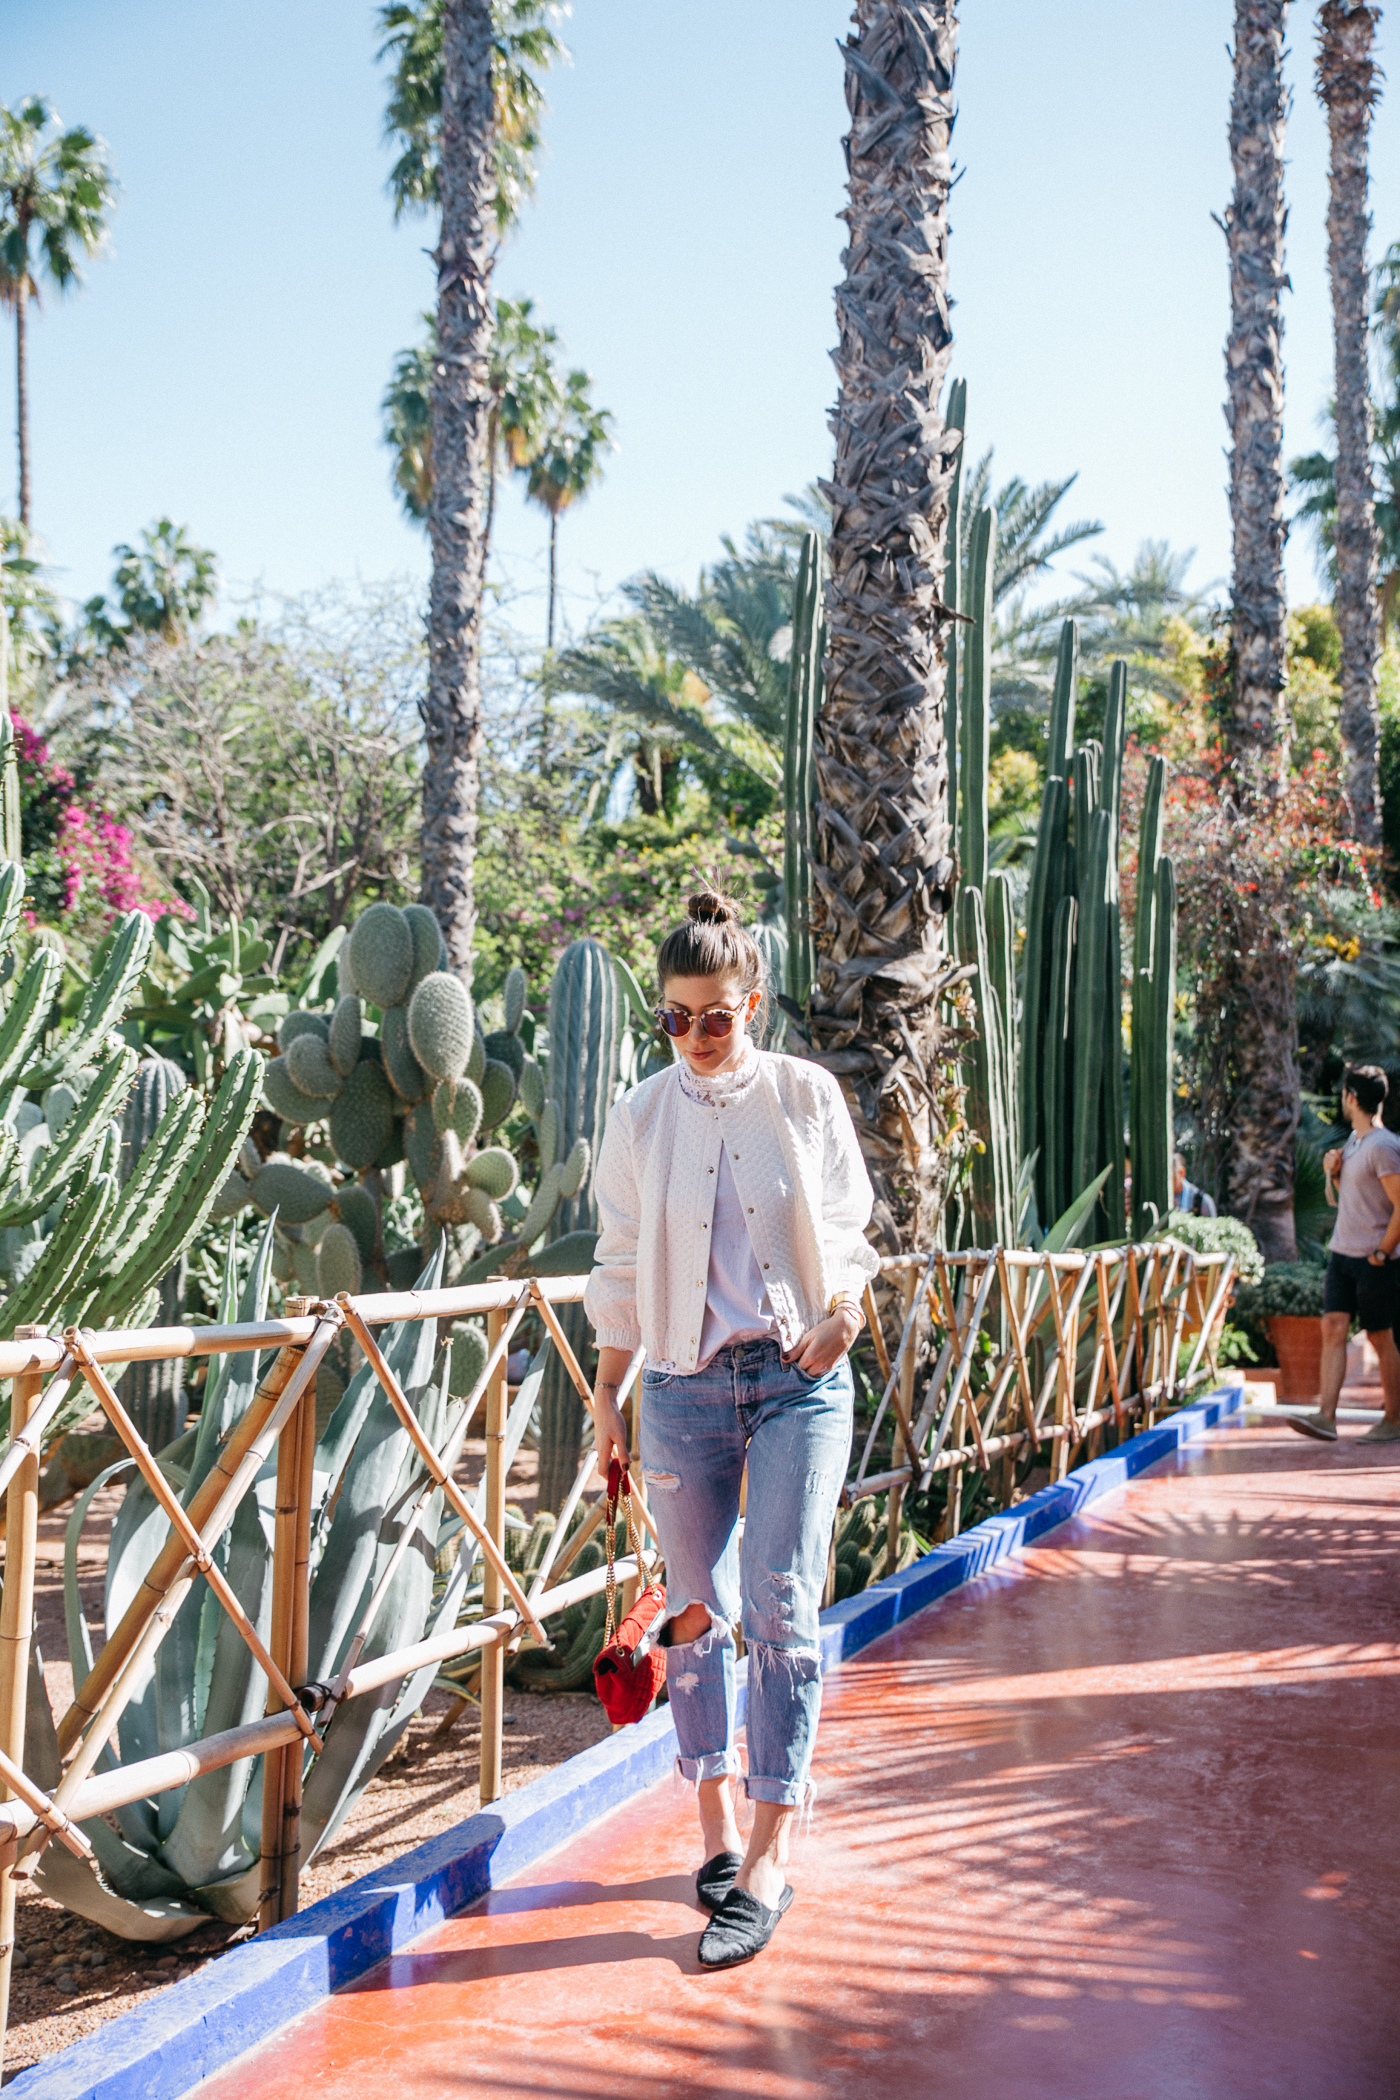 Le jardin majorelle marrakech yves saint laurent garden for Jardin marrakech